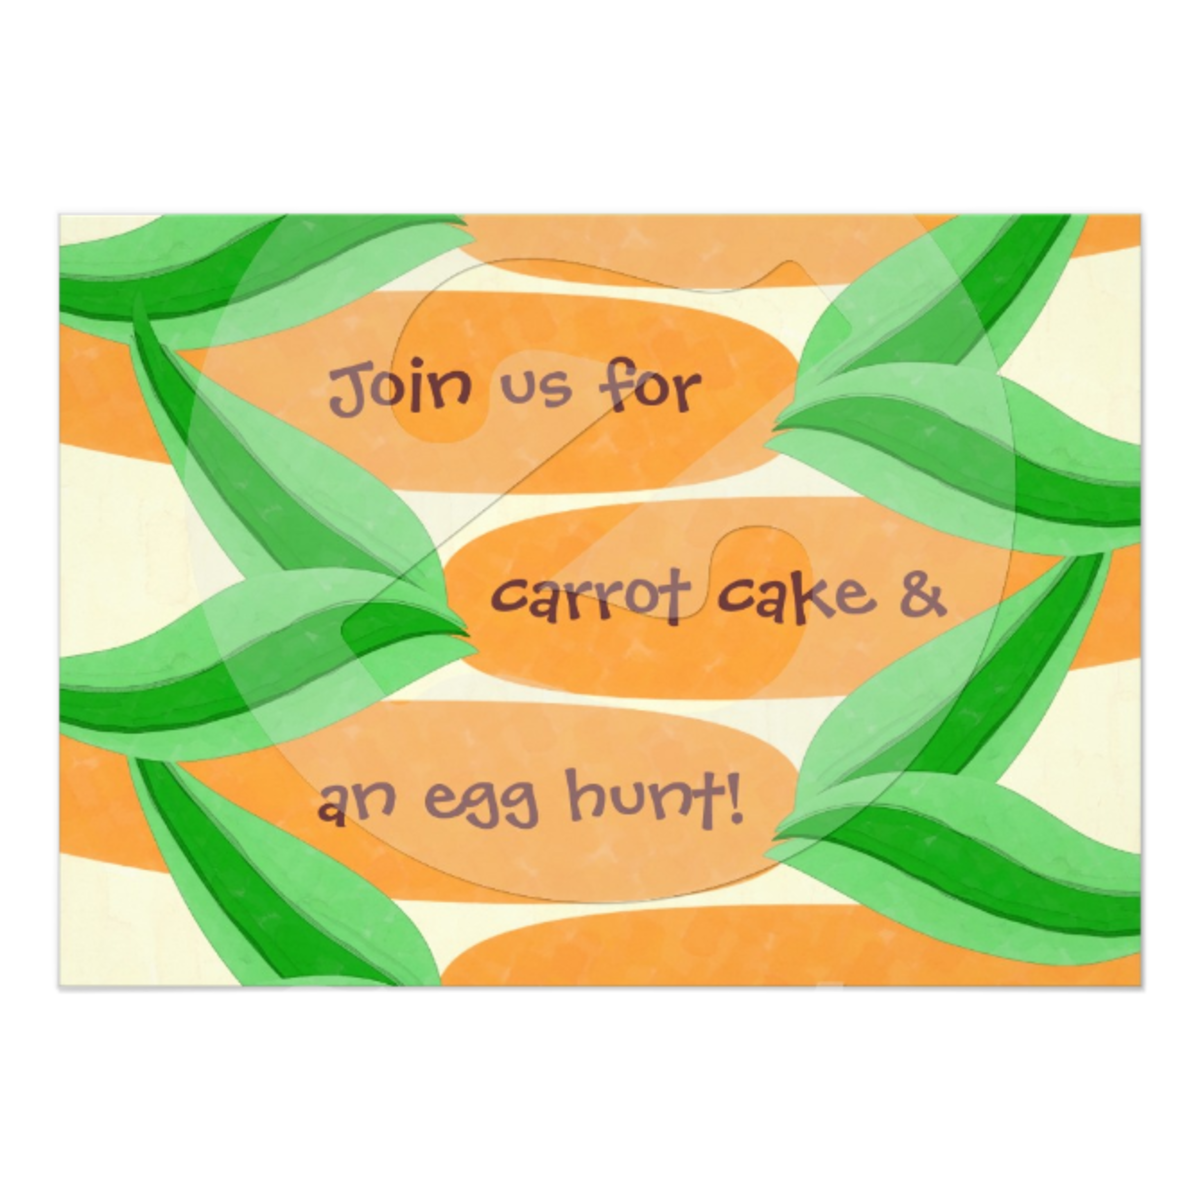 Custom Carrot Cake and an Egg Hunt Easter Invitation available on many paper types.   Made in 24 hours.